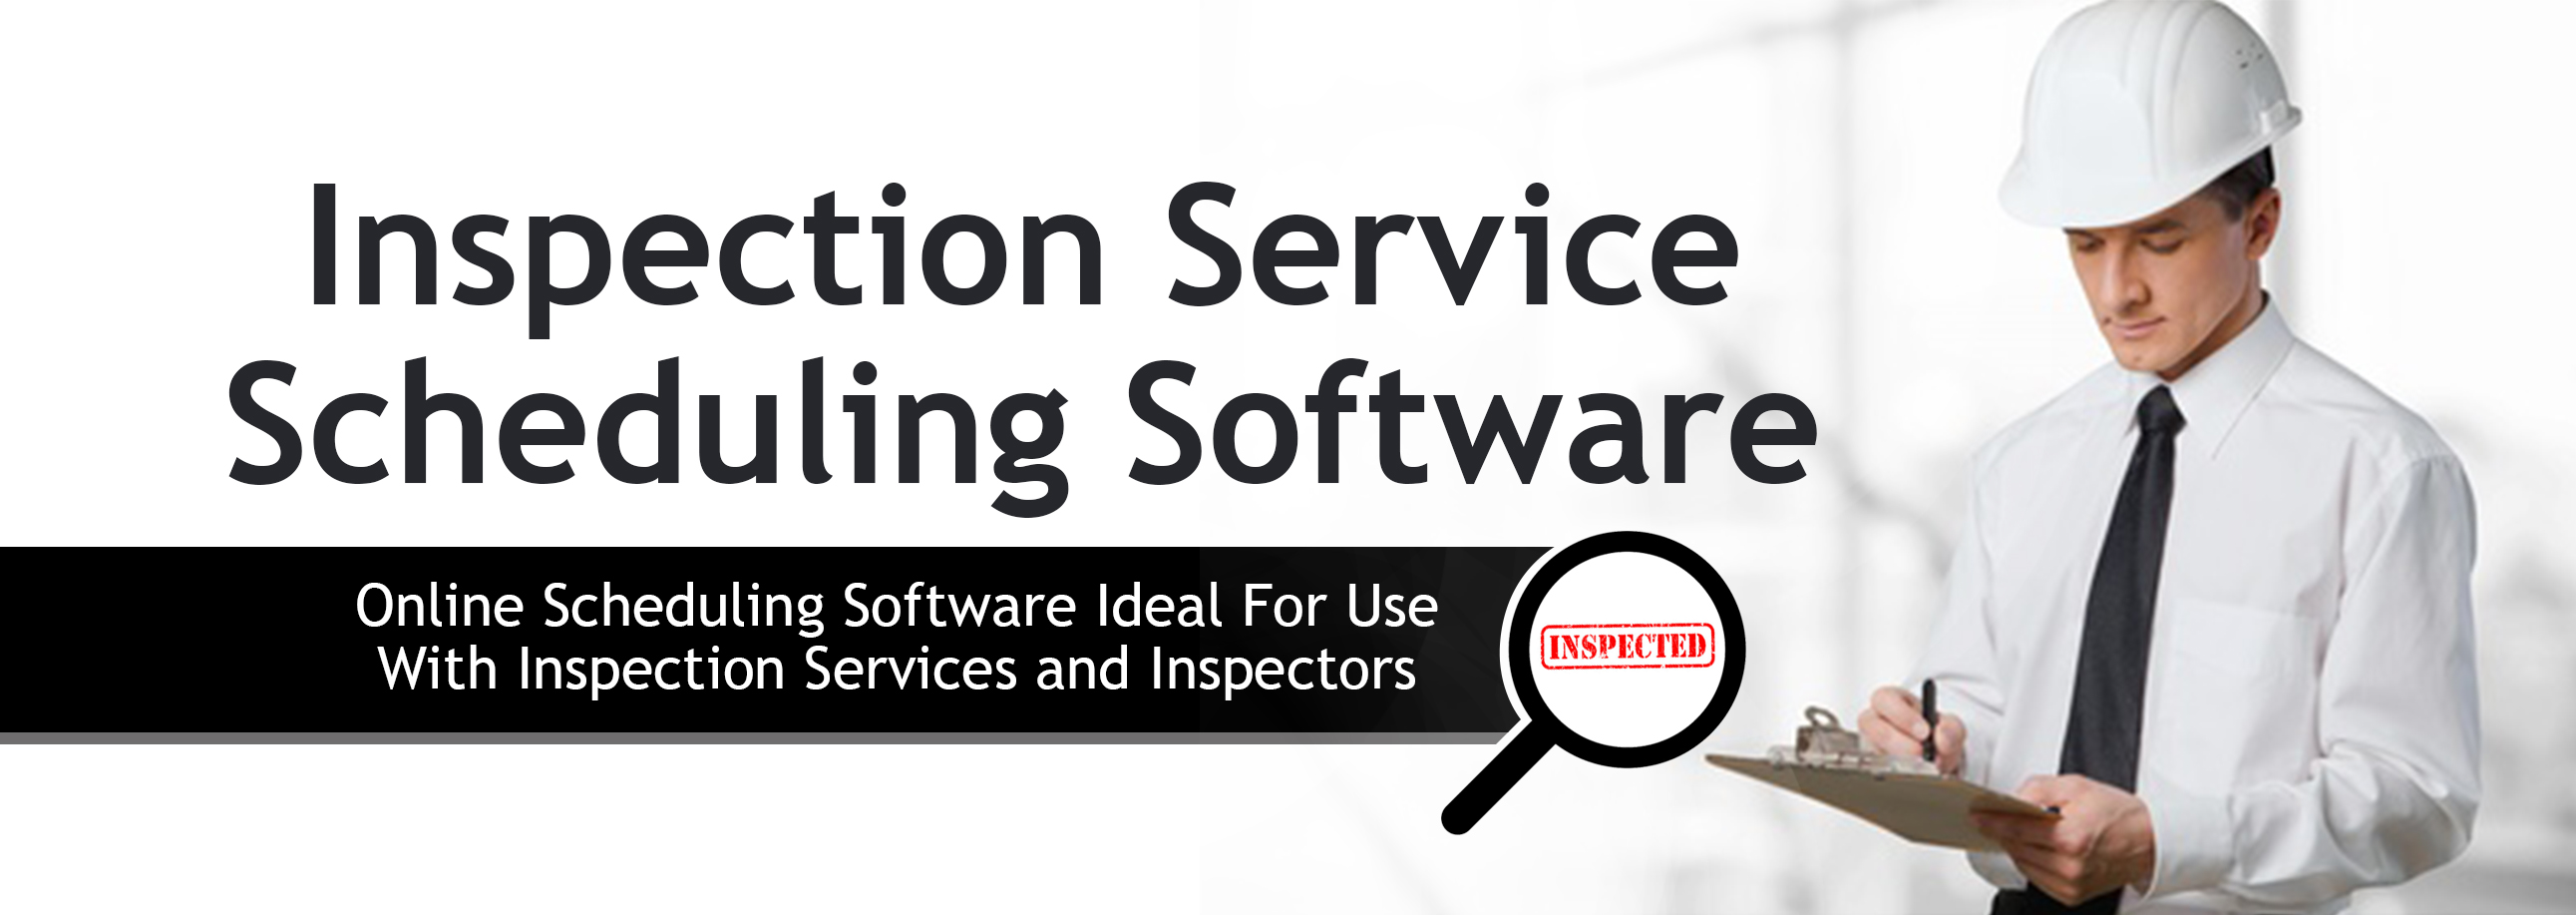 inspection-service-scheduling-software_v1